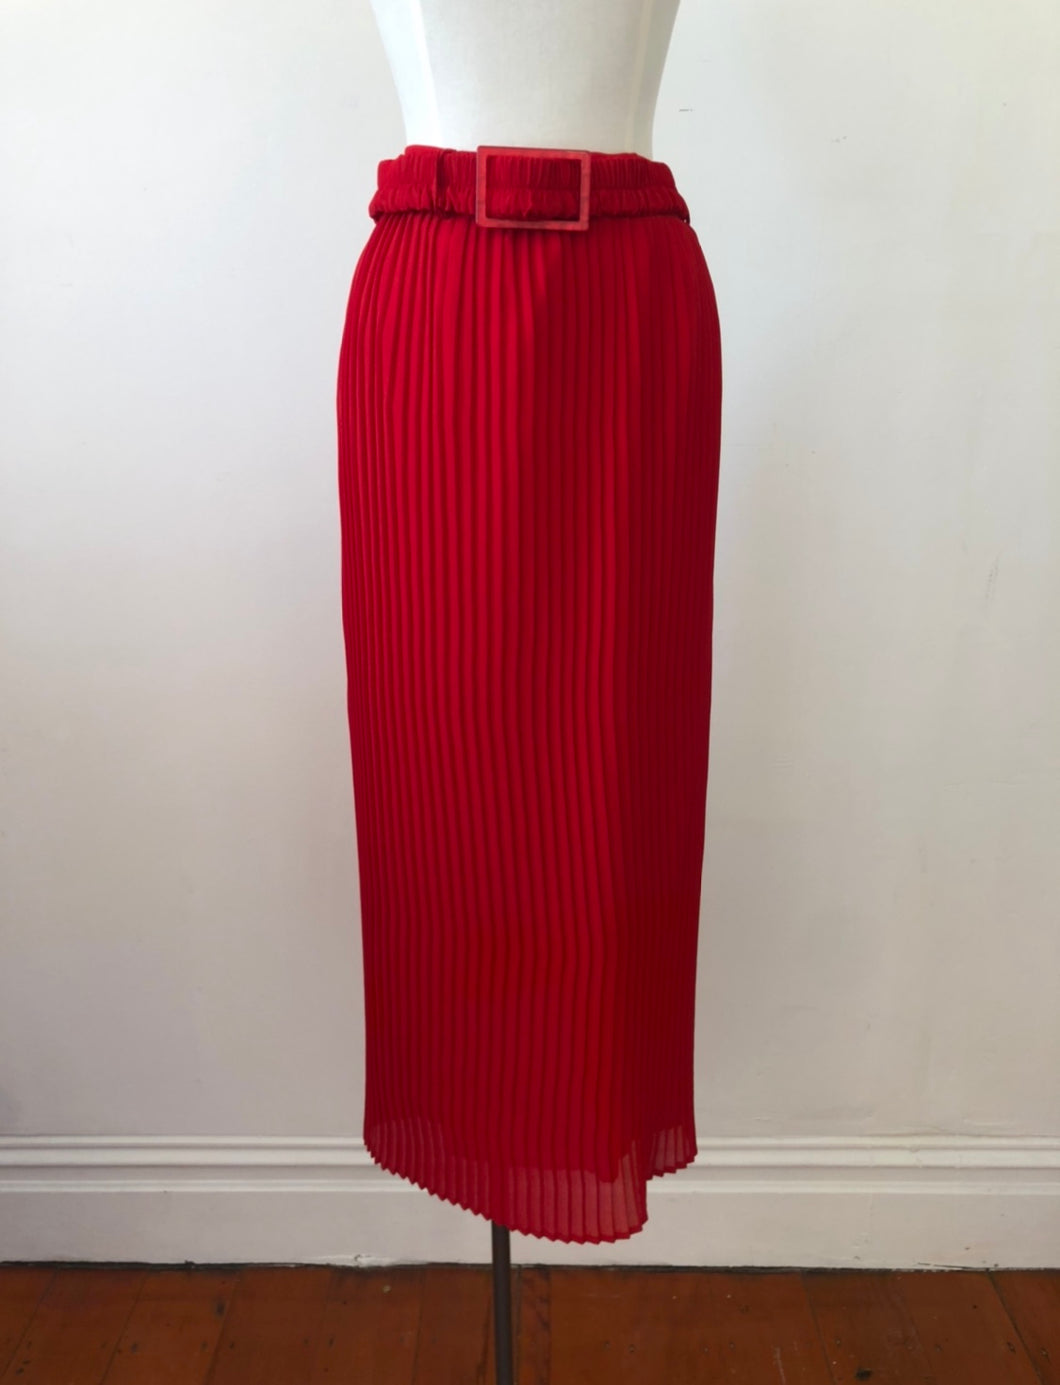 Sample/One of a kind- Olympia skirt, scarlet